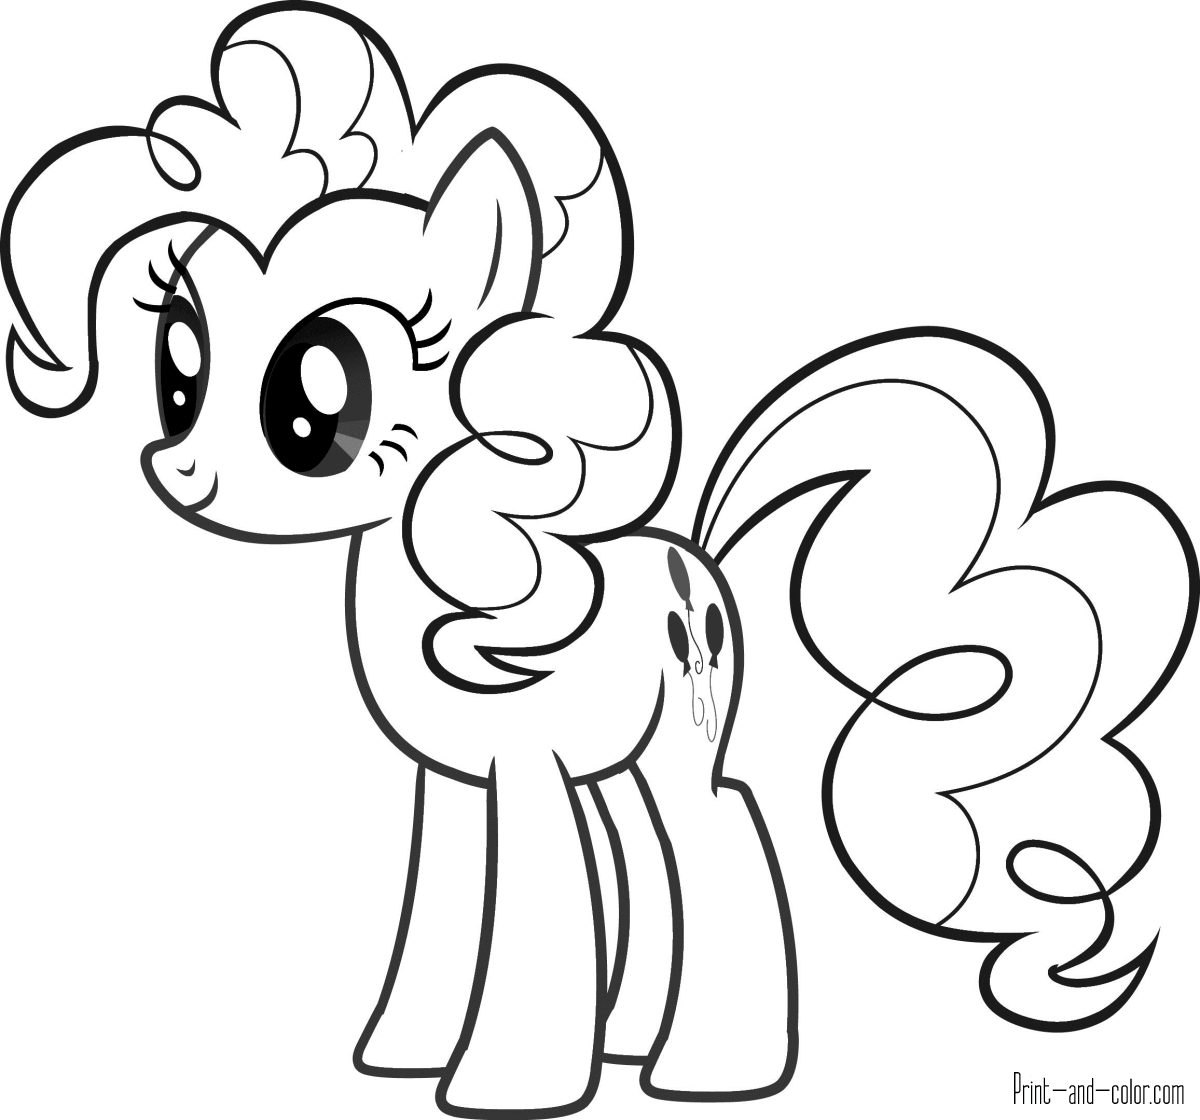 my little pony coloring images my little pony pinkie pie coloring pages team colors images pony my coloring little